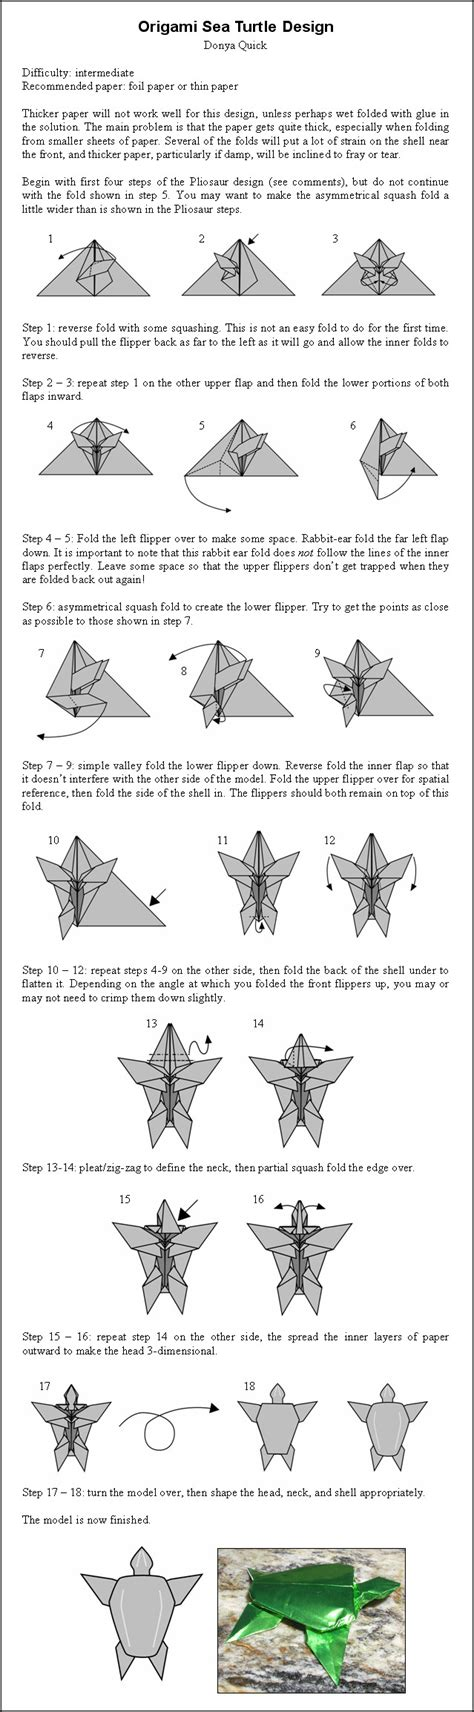 How To Make A Origami Turtle - origami sea